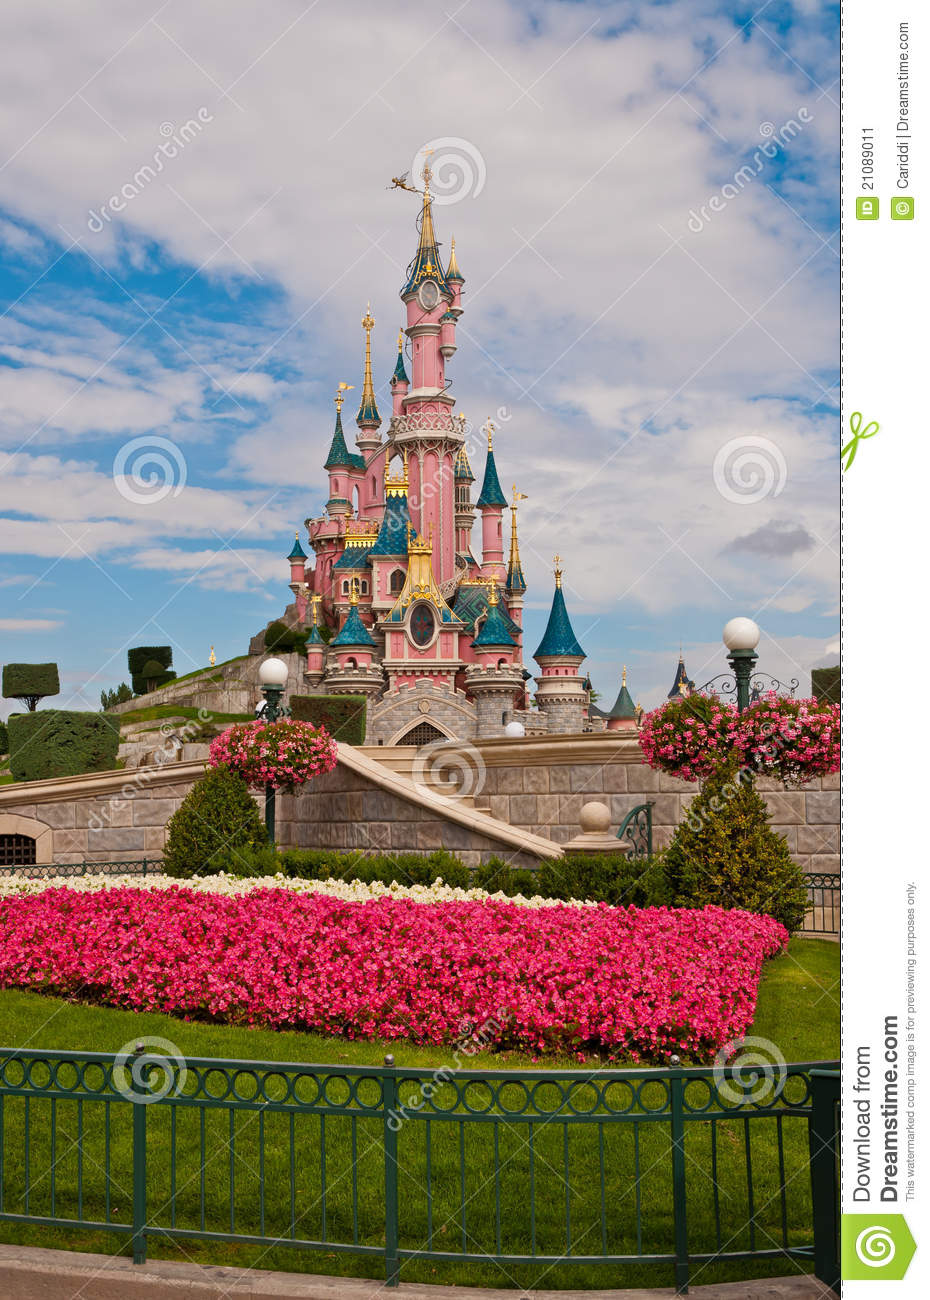 Flower Garden And Castle At Disneyland Editorial Photo